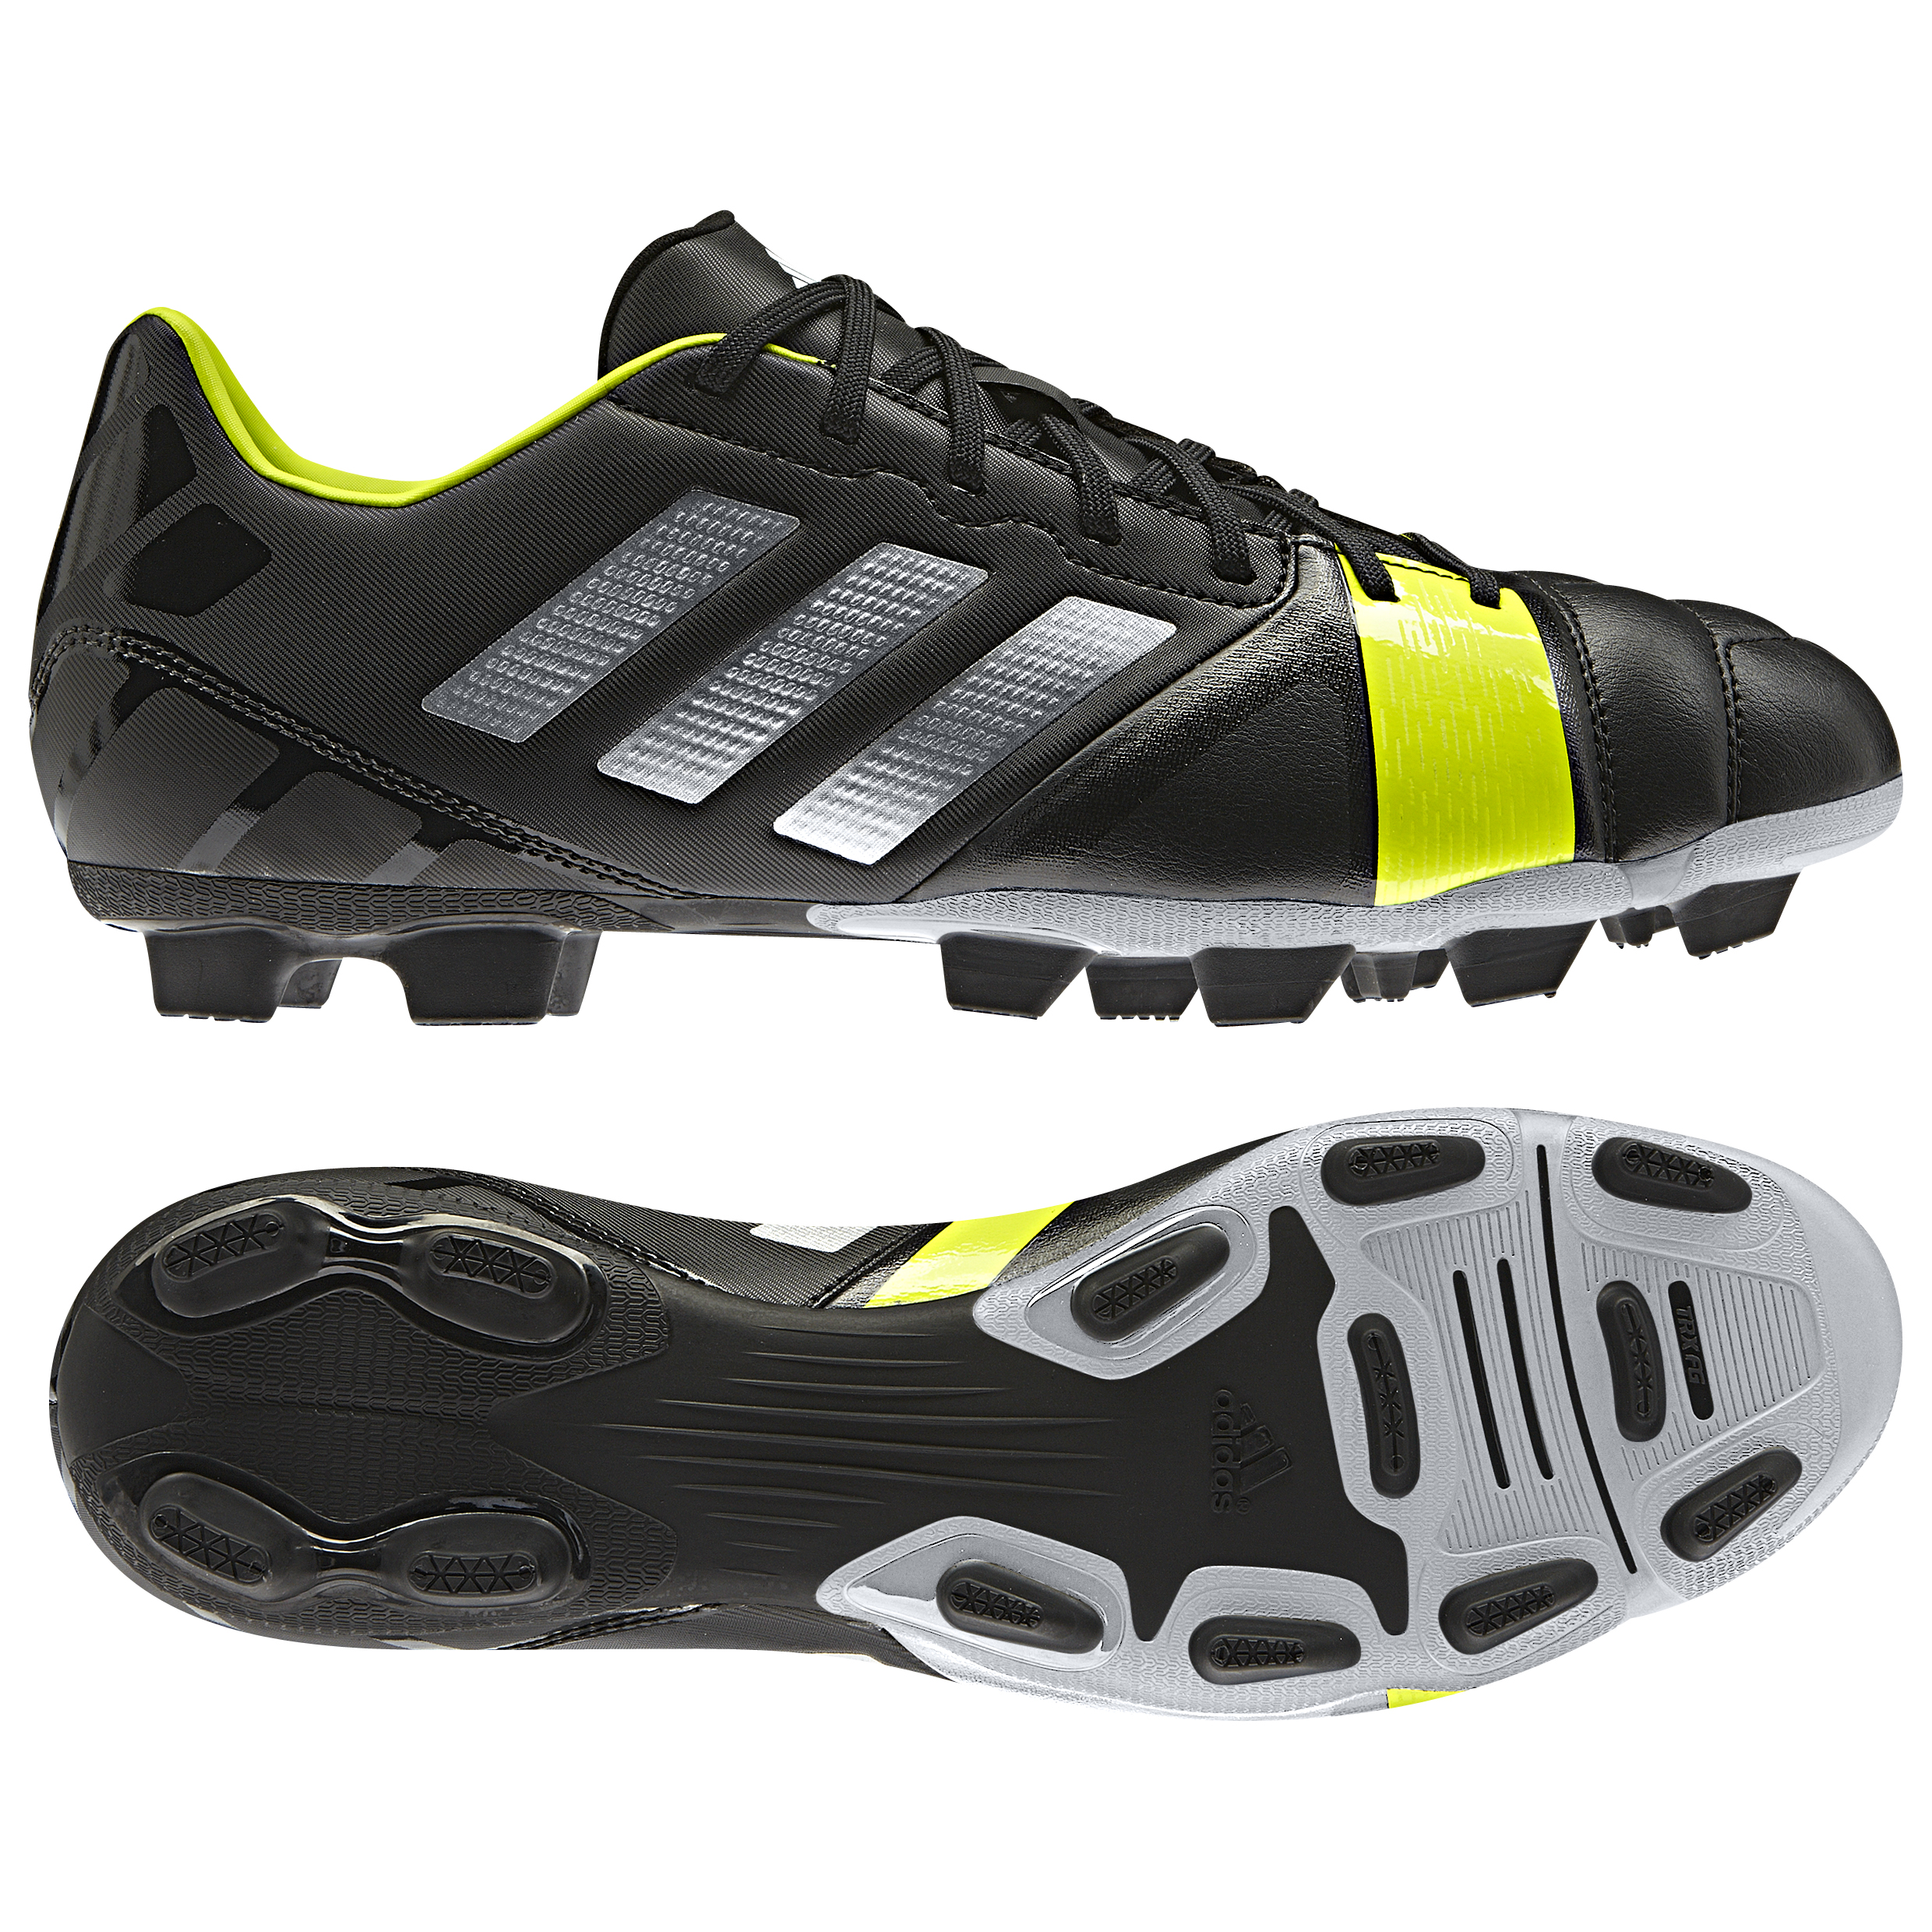 Adidas Nitrocharge 3.0 TRX Firm Ground Football Boots Black